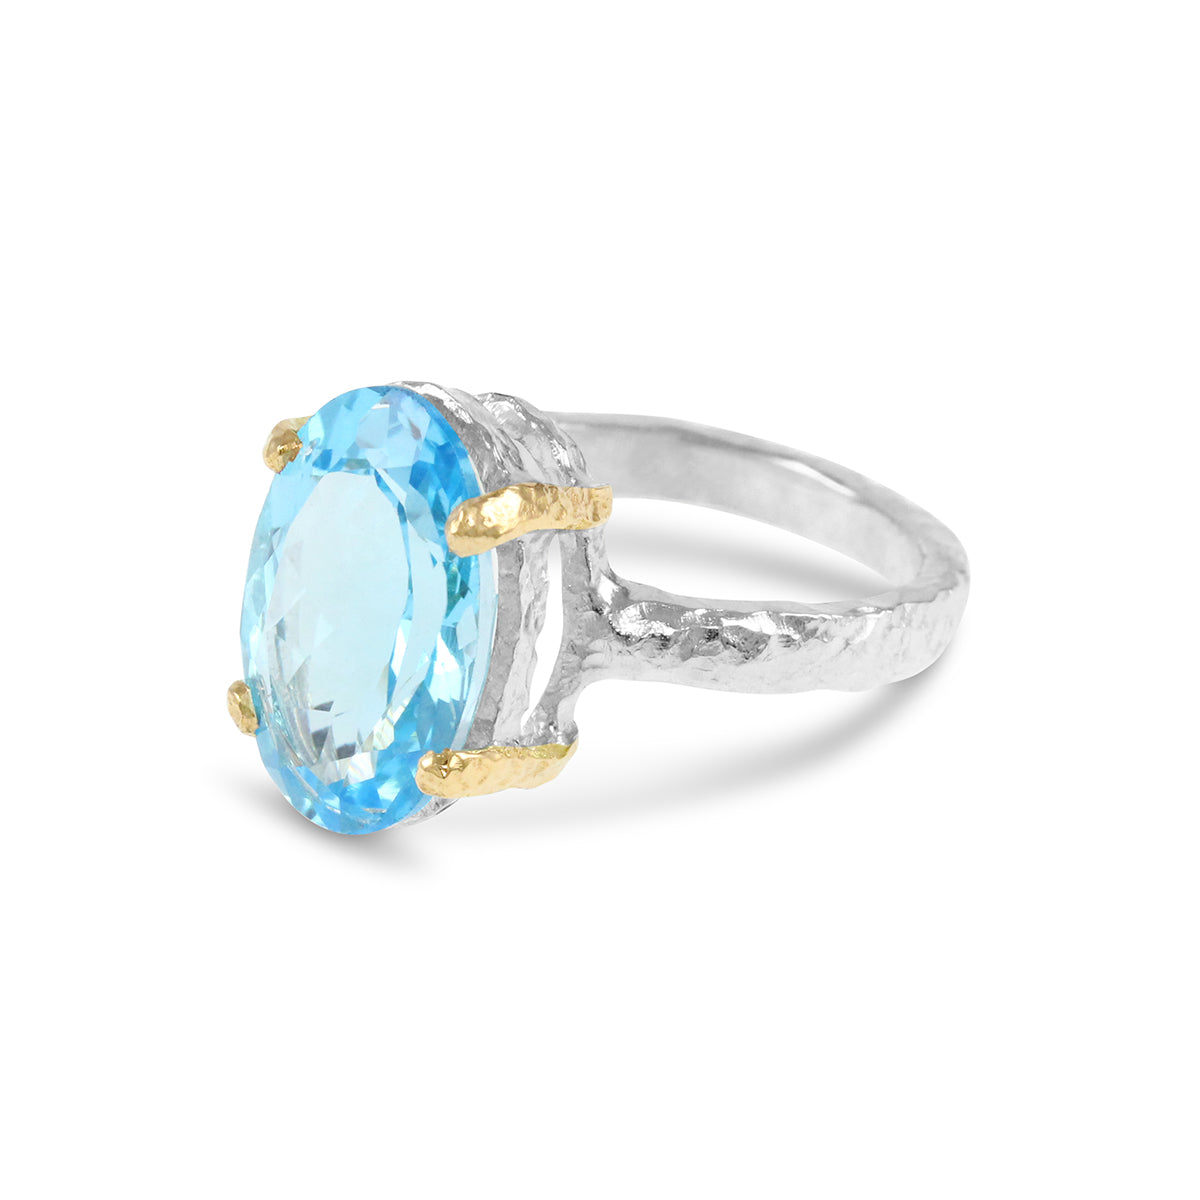 Ring handcrafted in sterling silver with 18ct yellow gold claws set with blue topaz. - Paul Magen